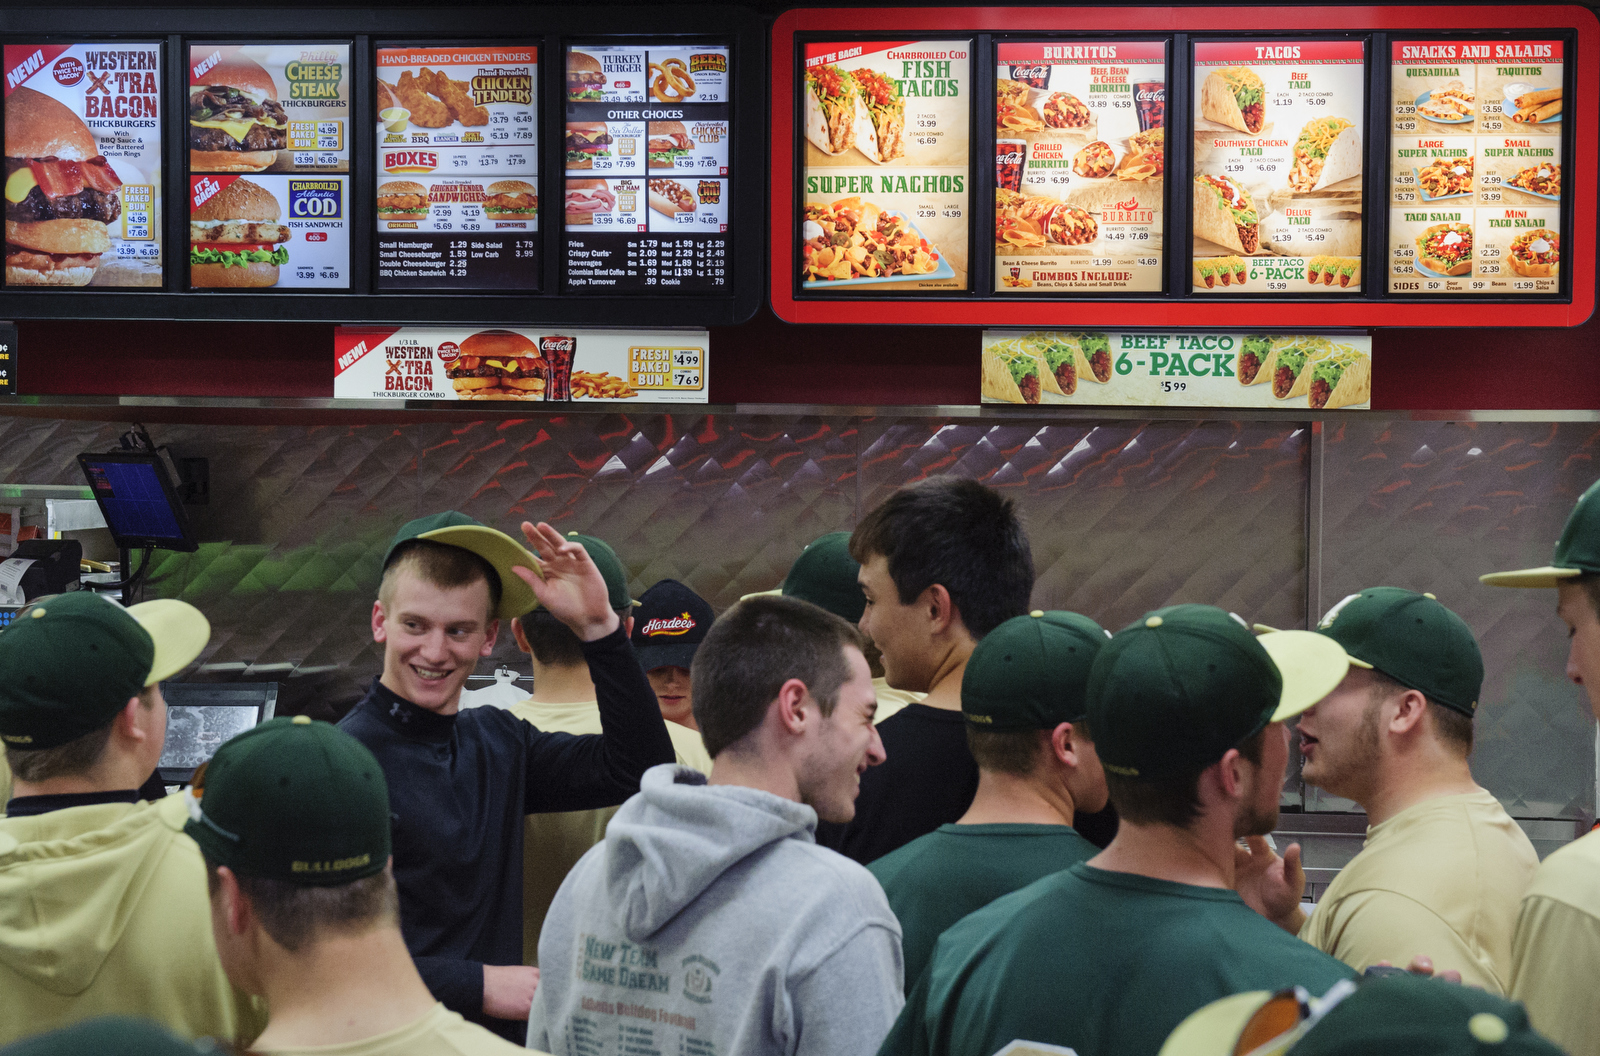 Hunter Mullins laughs with his teammates while they wait in line to order from Hardee's, a fast food restaurant. The team will usually go out to eat after an away game.